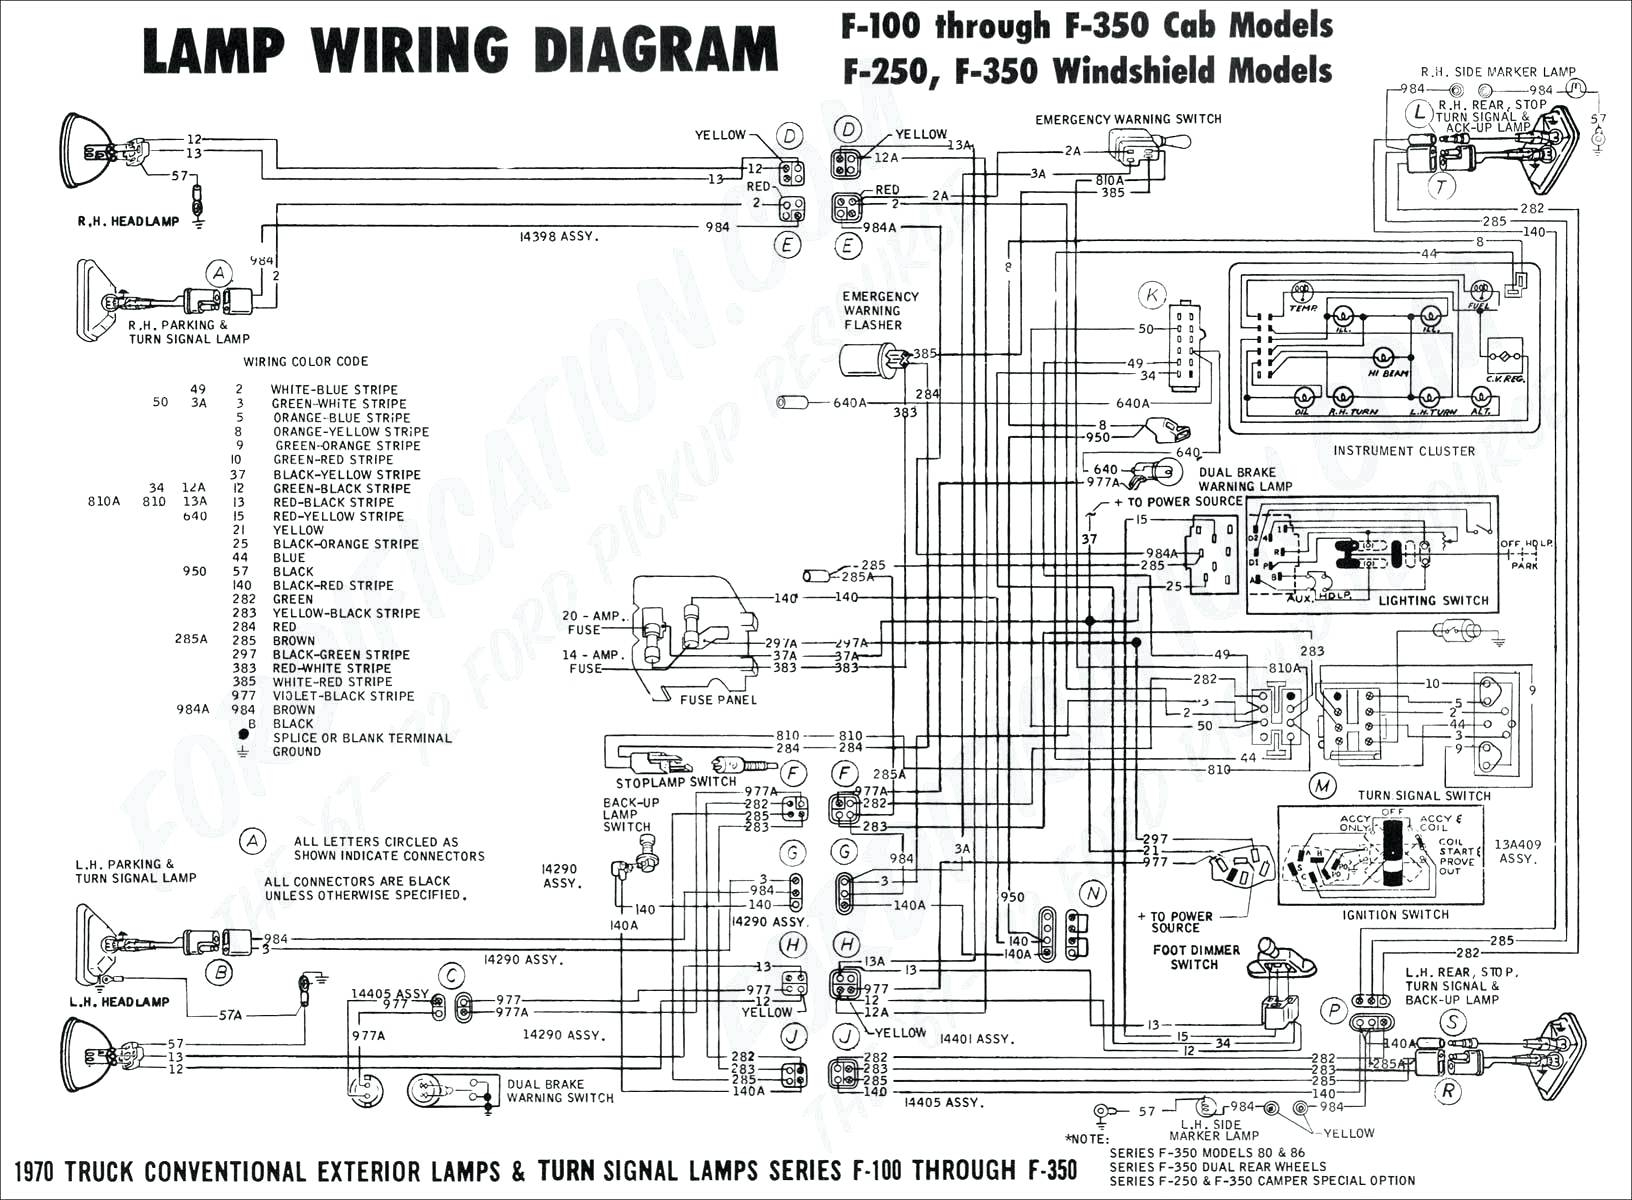 2006 dodge ram trailer brake wiring diagram    diagram based    1998 dodge ram trailer wiring diagram completed  1998 dodge ram trailer wiring diagram